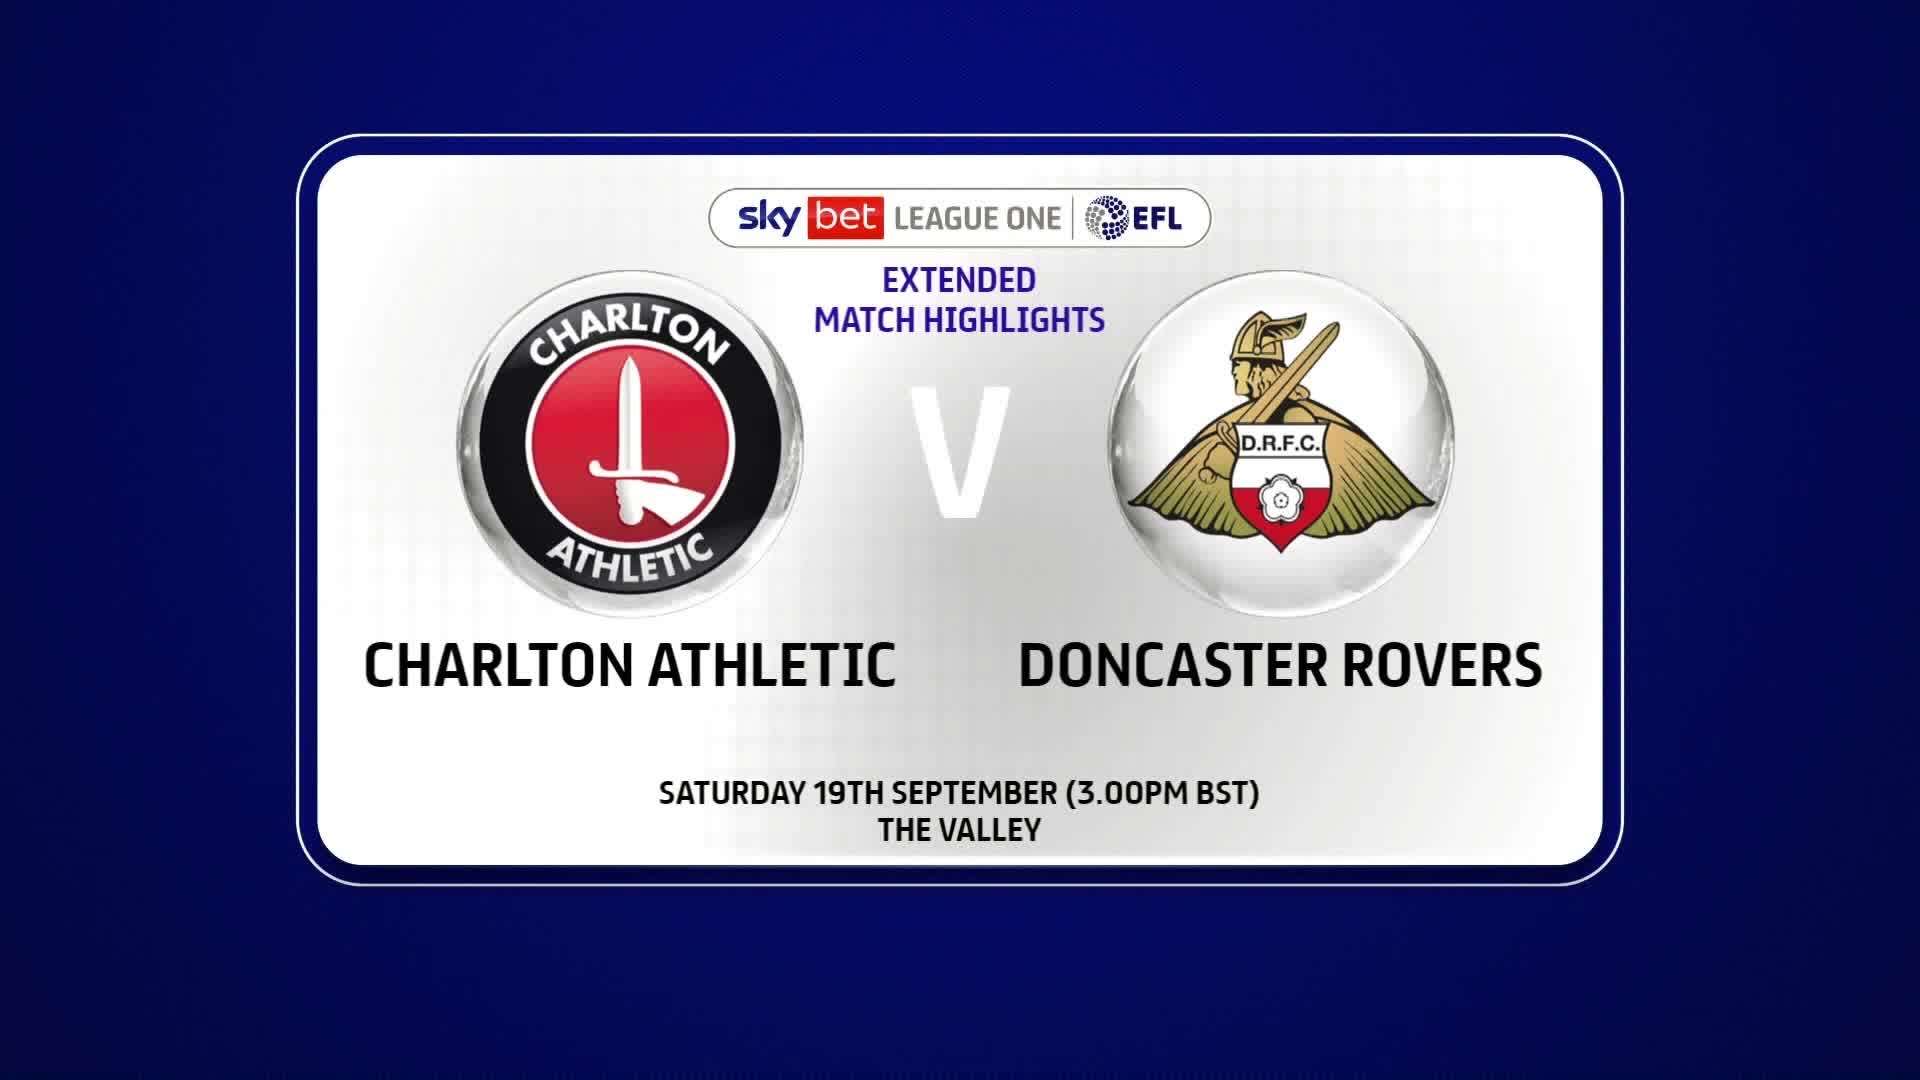 EXTENDED | Doncaster Rovers 3 Charlton 1 (September 2020)